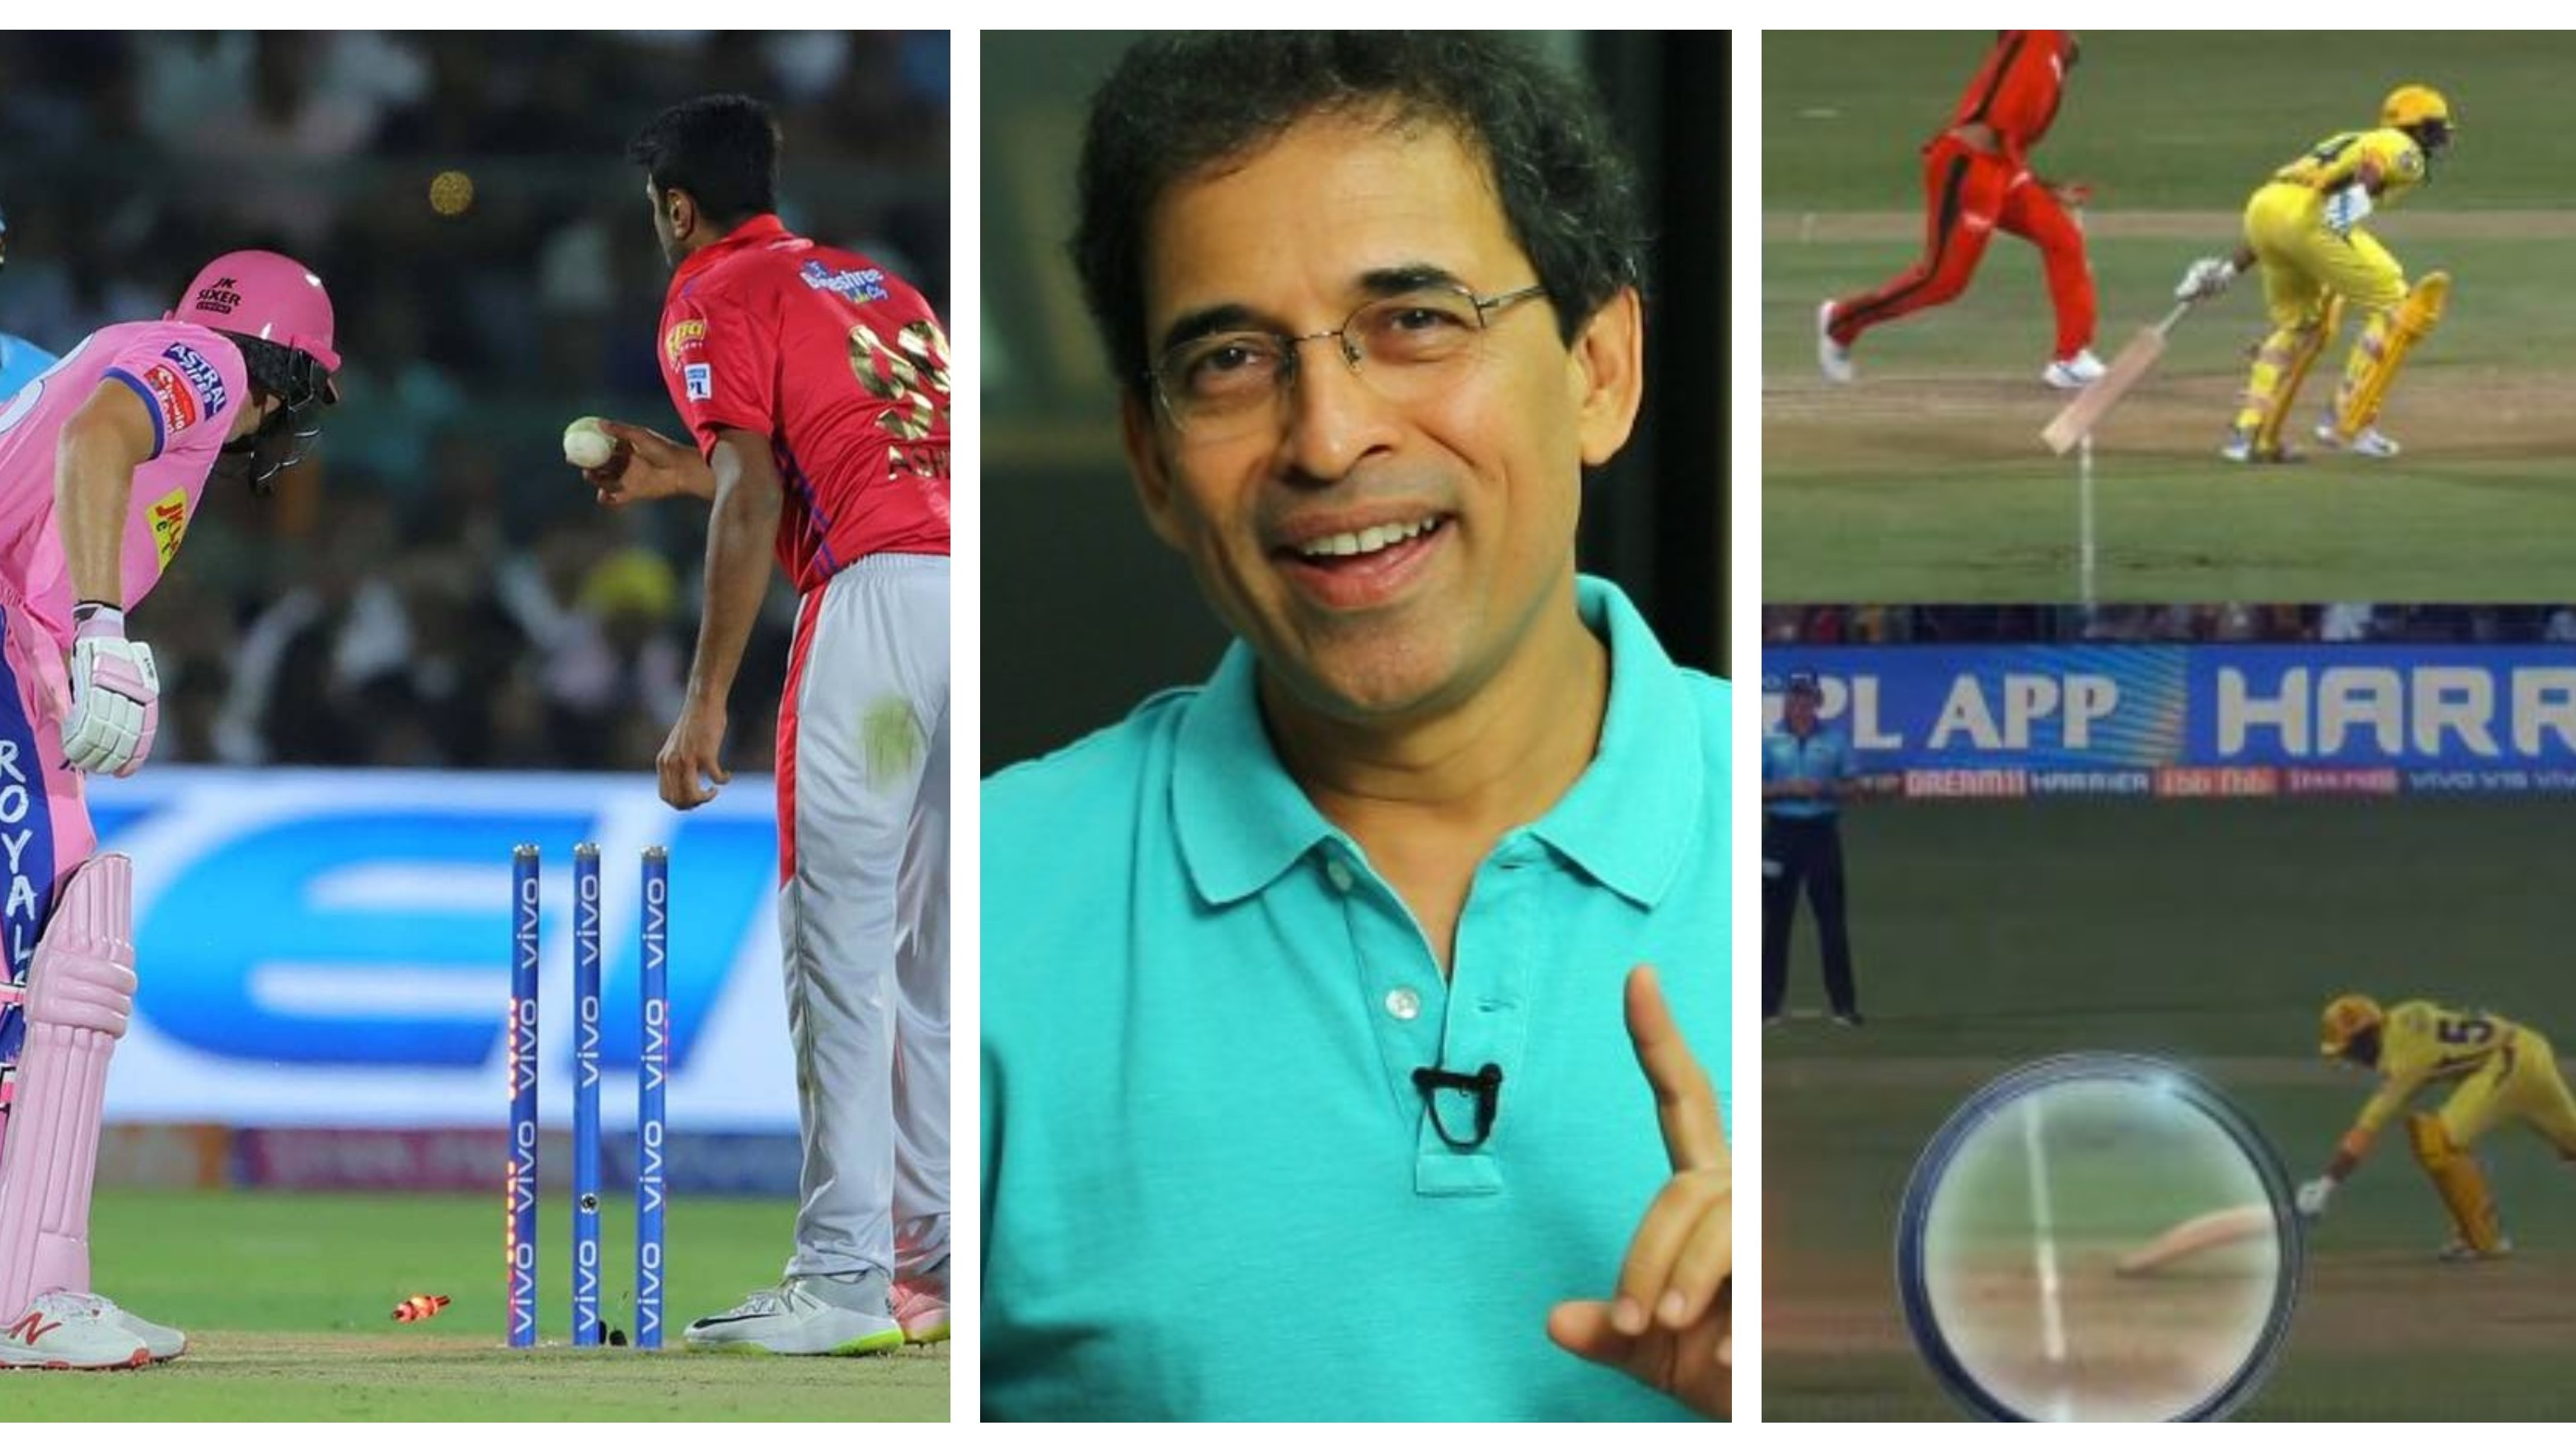 IPL 2019: Harsha Bhogle expresses support to